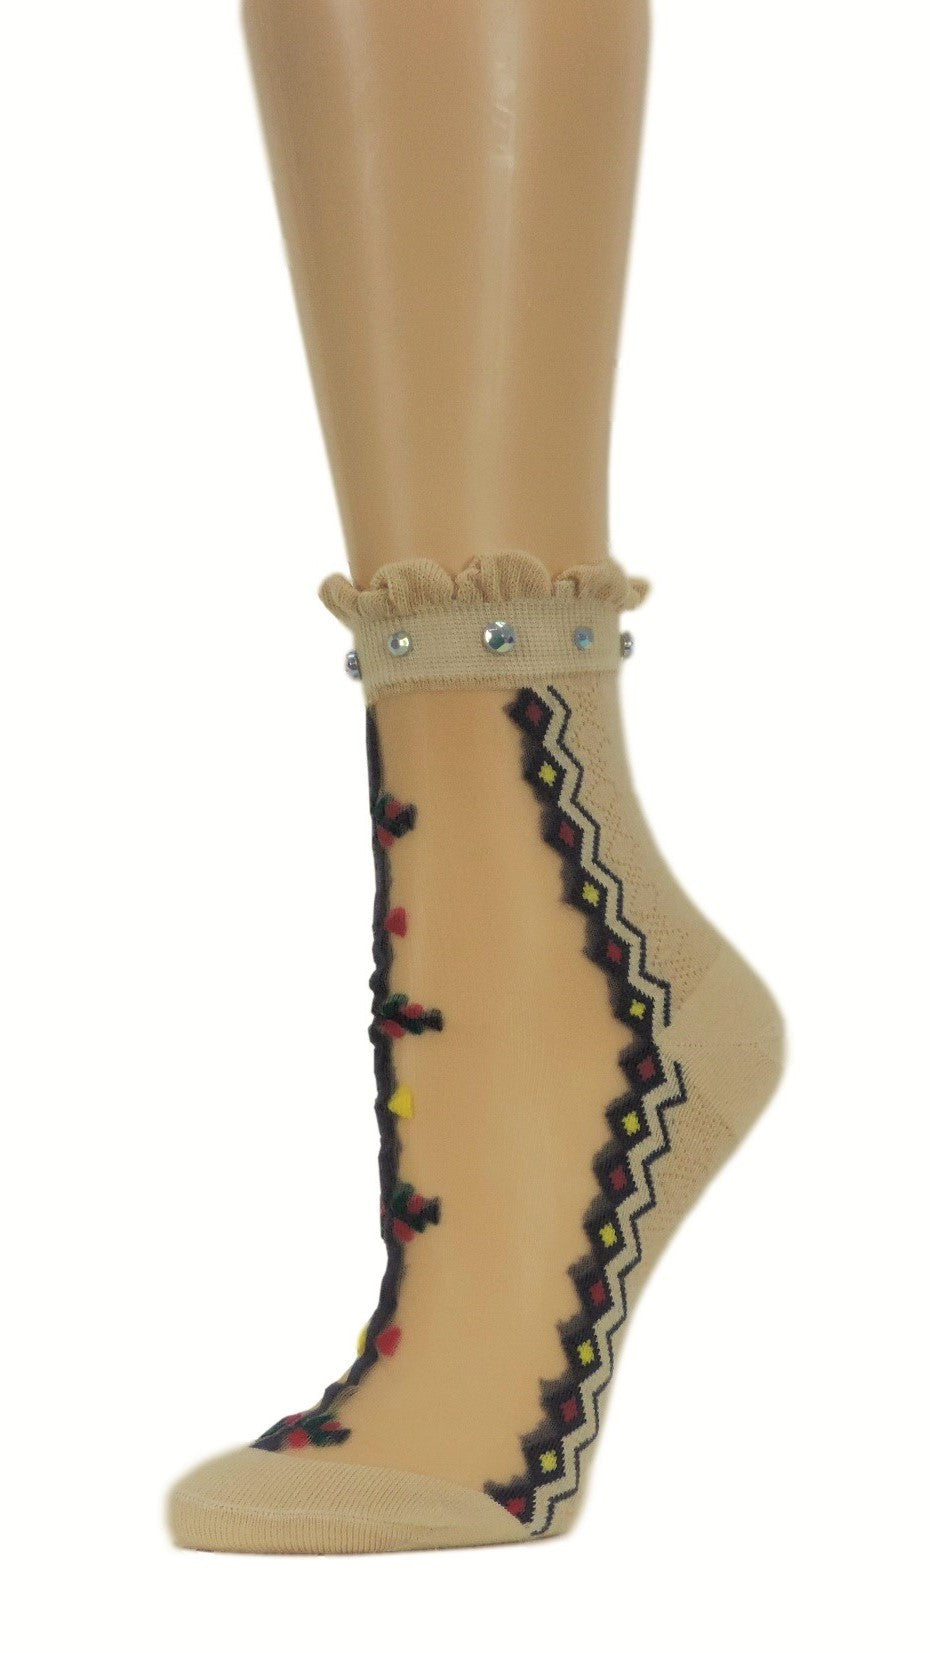 Spiral Beige Custom Sheer Socks with beads